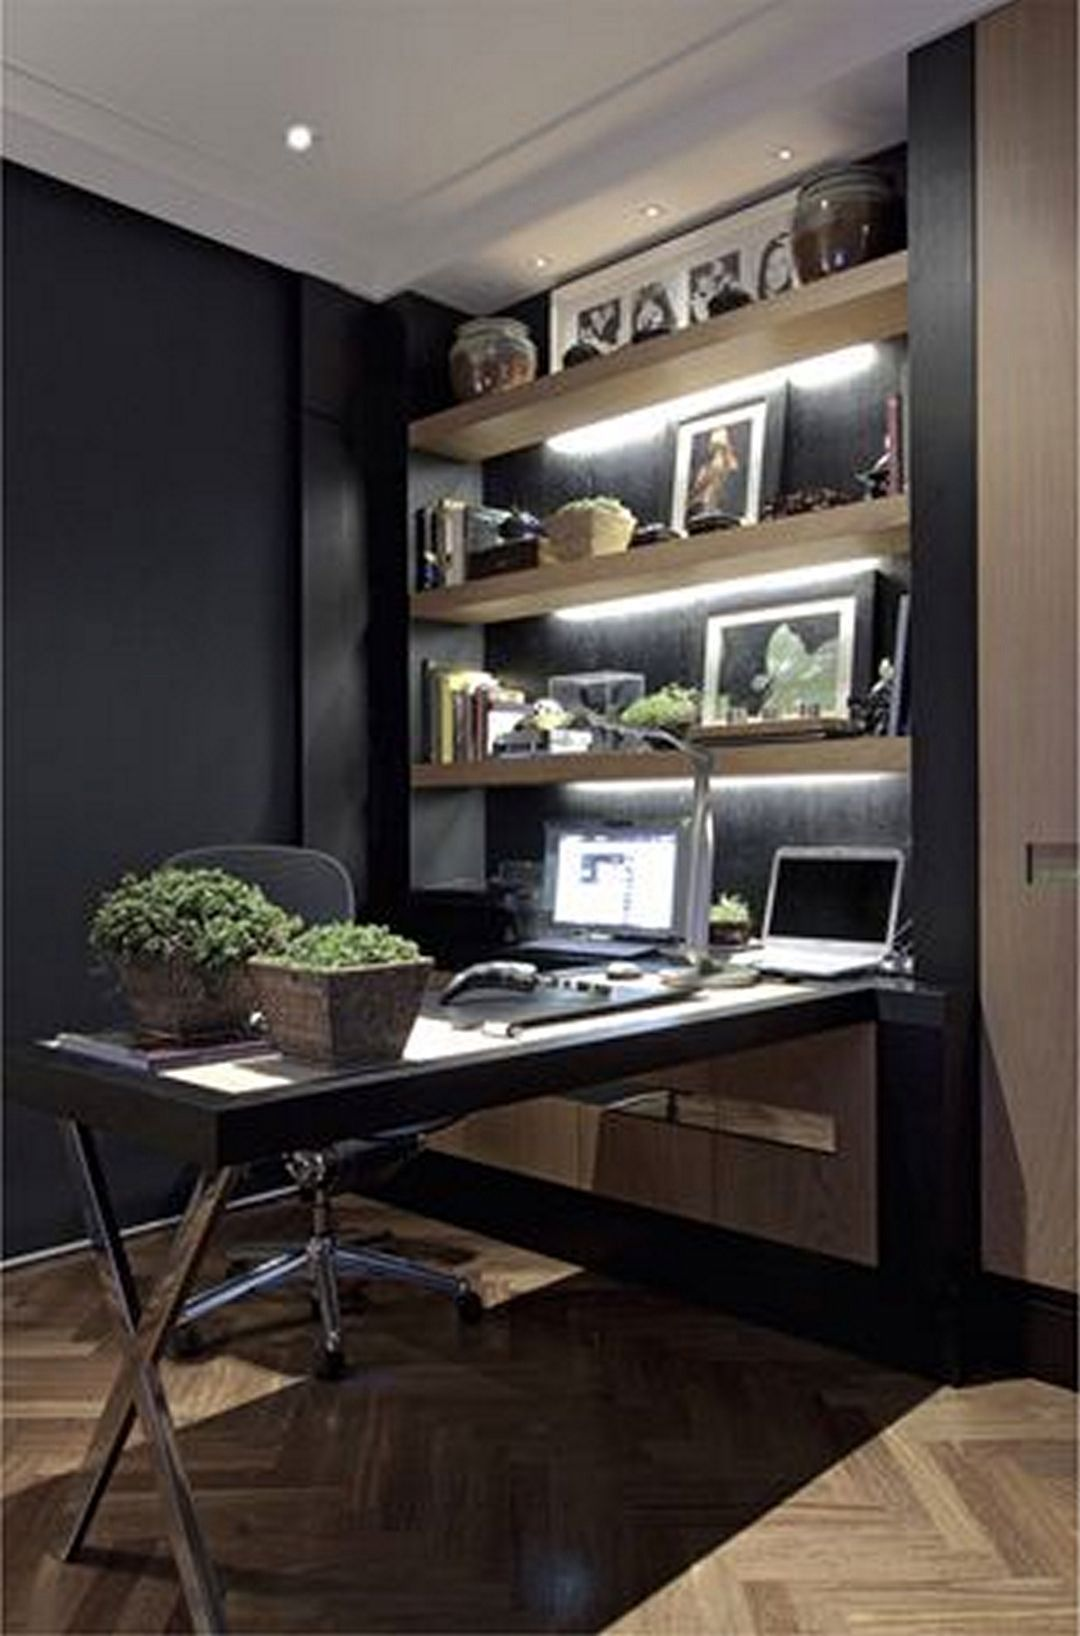 170 Beautiful Home Office Design Ideas https://www ... on bath lighting ideas, pathway lighting design ideas, plumbing design ideas, auditorium lighting design ideas, church lighting design ideas, home interior lighting design, new construction design ideas, deck lighting design ideas, event tickets design ideas, security design ideas, garden shed door design ideas, home depot lighting outdoor rope, bar lighting design ideas, ceiling lighting ideas, stage lighting design ideas, home walkway lighting ideas, interior lighting design ideas, coupons design ideas, interior house lighting ideas, architectural lighting design ideas,